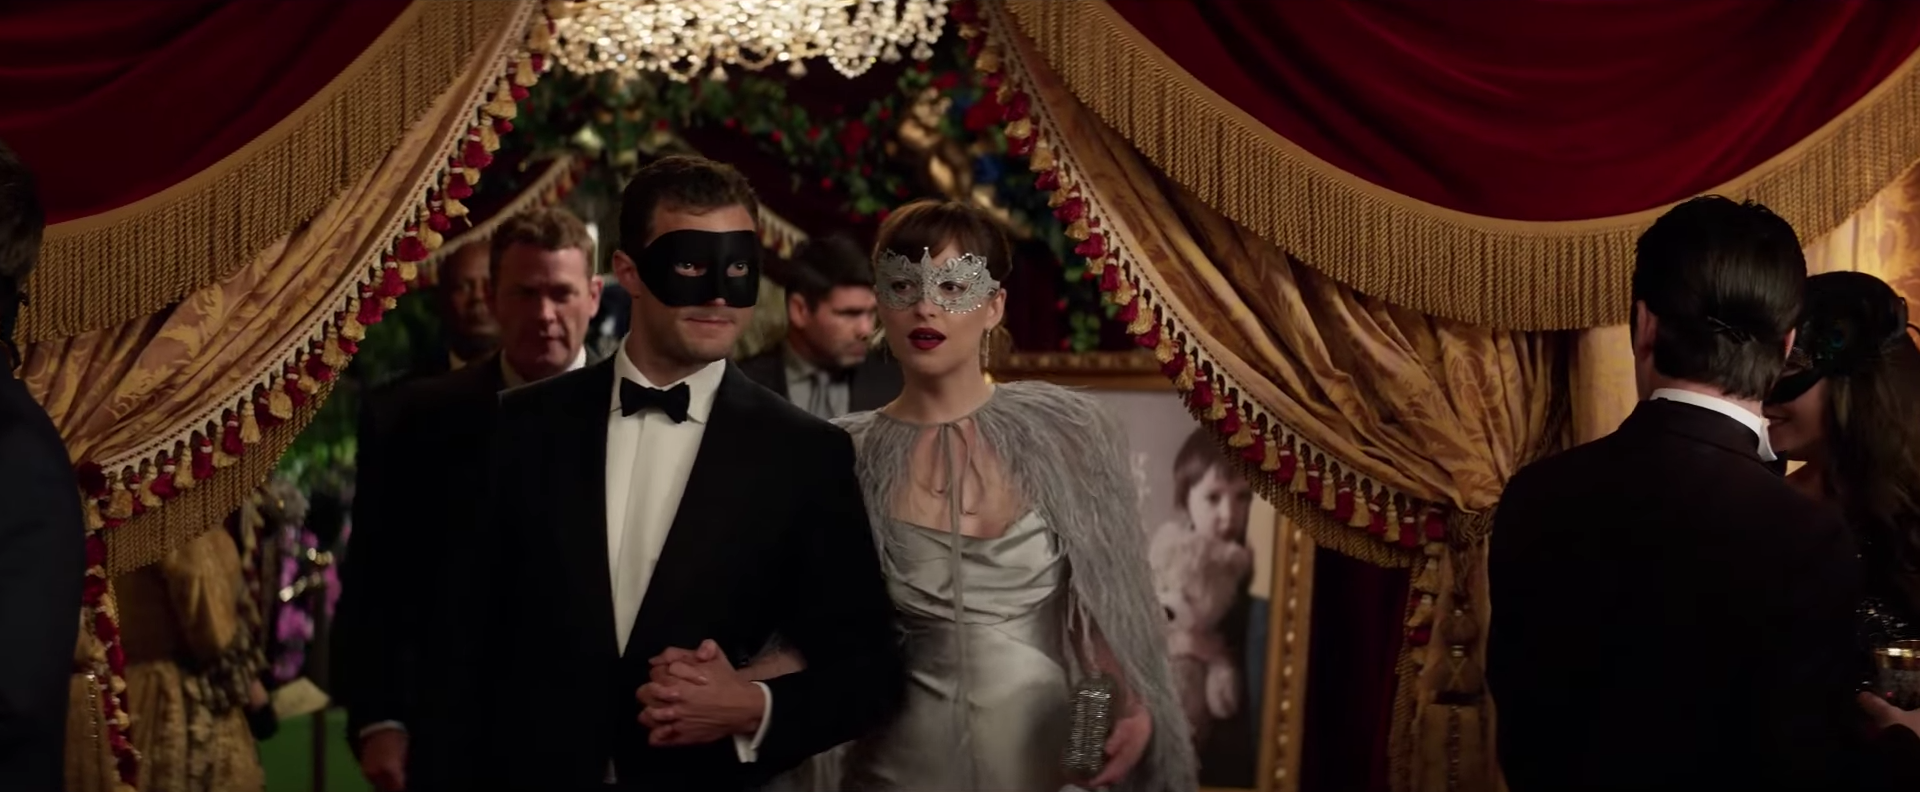 'Fifty Shades Darker' trailer takes a dangerous turn